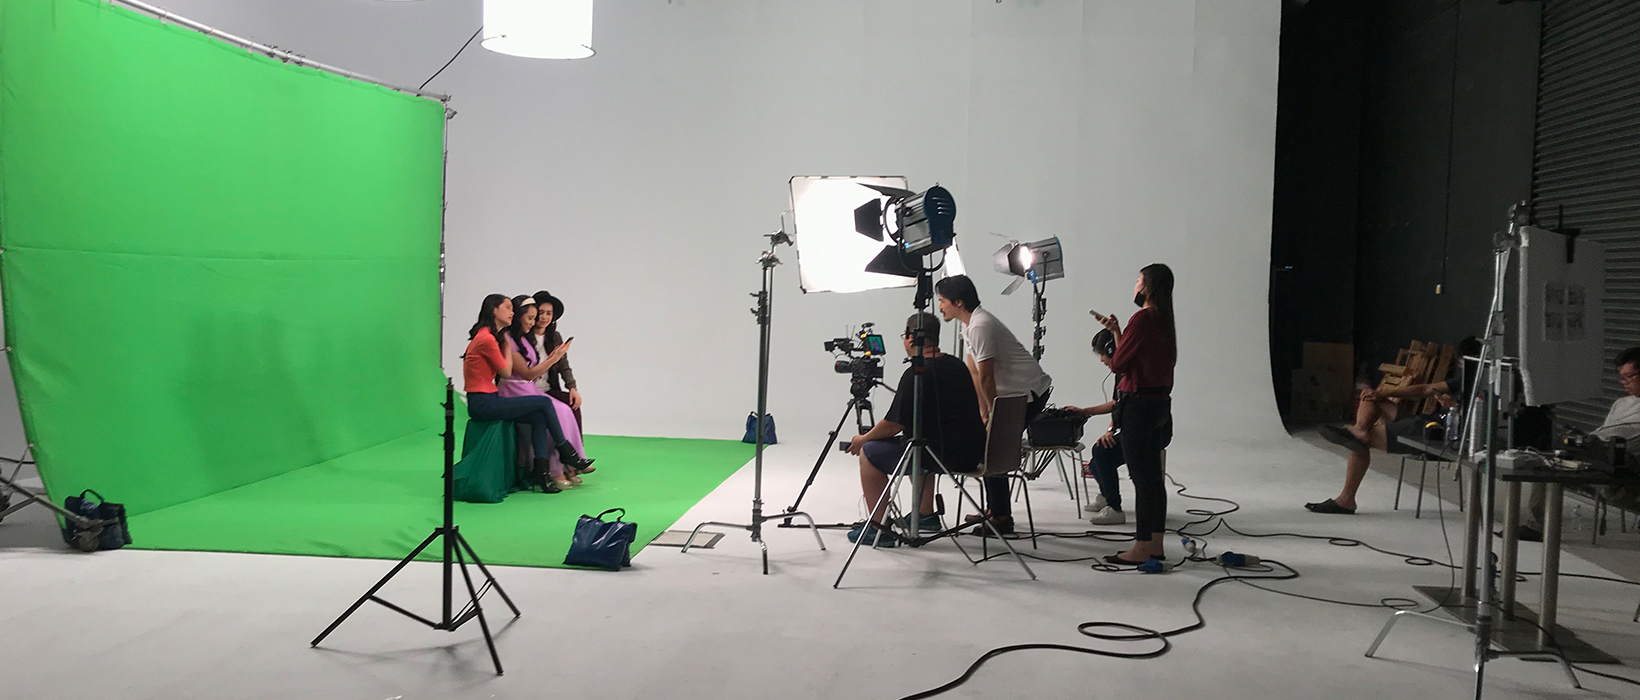 green screen studio shoot for tv commercial and corporate video